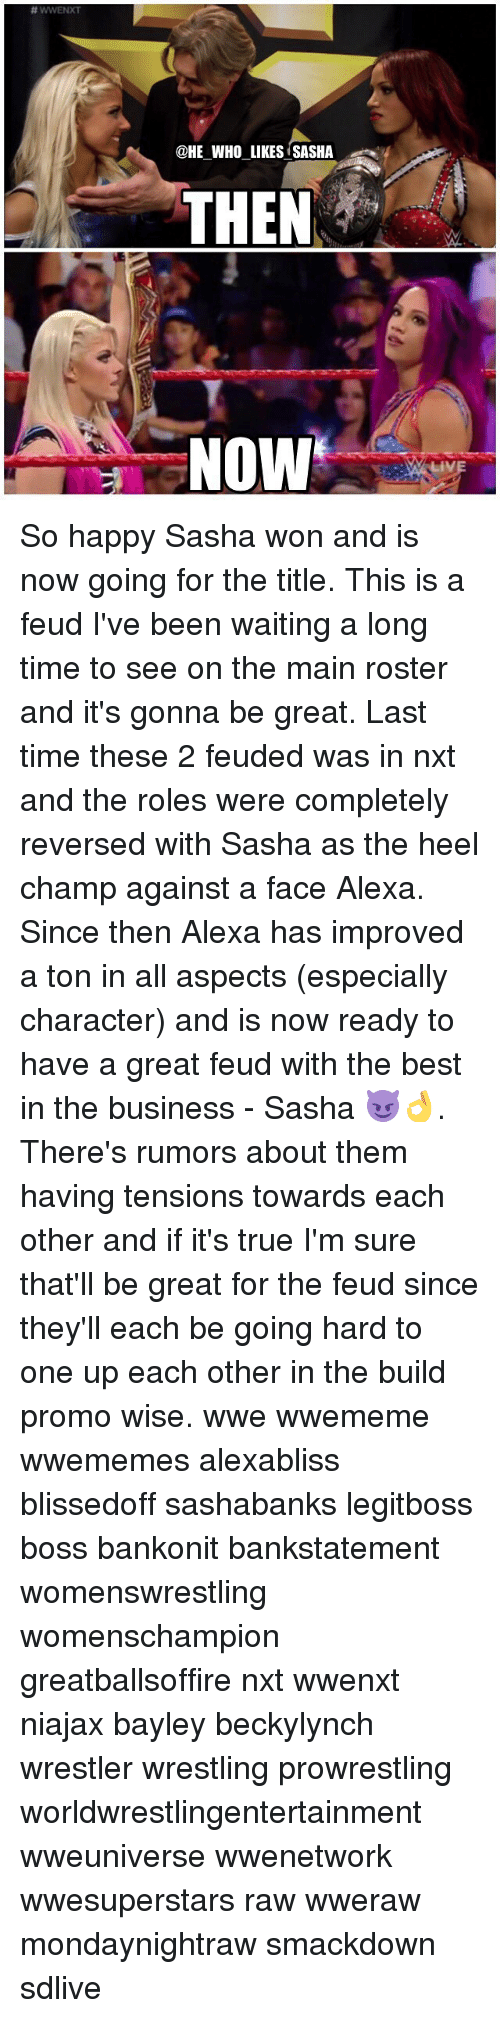 One Upping: @HE WHO LIKES SASHA  THEN ,  NOW So happy Sasha won and is now going for the title. This is a feud I've been waiting a long time to see on the main roster and it's gonna be great. Last time these 2 feuded was in nxt and the roles were completely reversed with Sasha as the heel champ against a face Alexa. Since then Alexa has improved a ton in all aspects (especially character) and is now ready to have a great feud with the best in the business - Sasha 😈👌. There's rumors about them having tensions towards each other and if it's true I'm sure that'll be great for the feud since they'll each be going hard to one up each other in the build promo wise. wwe wwememe wwememes alexabliss blissedoff sashabanks legitboss boss bankonit bankstatement womenswrestling womenschampion greatballsoffire nxt wwenxt niajax bayley beckylynch wrestler wrestling prowrestling worldwrestlingentertainment wweuniverse wwenetwork wwesuperstars raw wweraw mondaynightraw smackdown sdlive